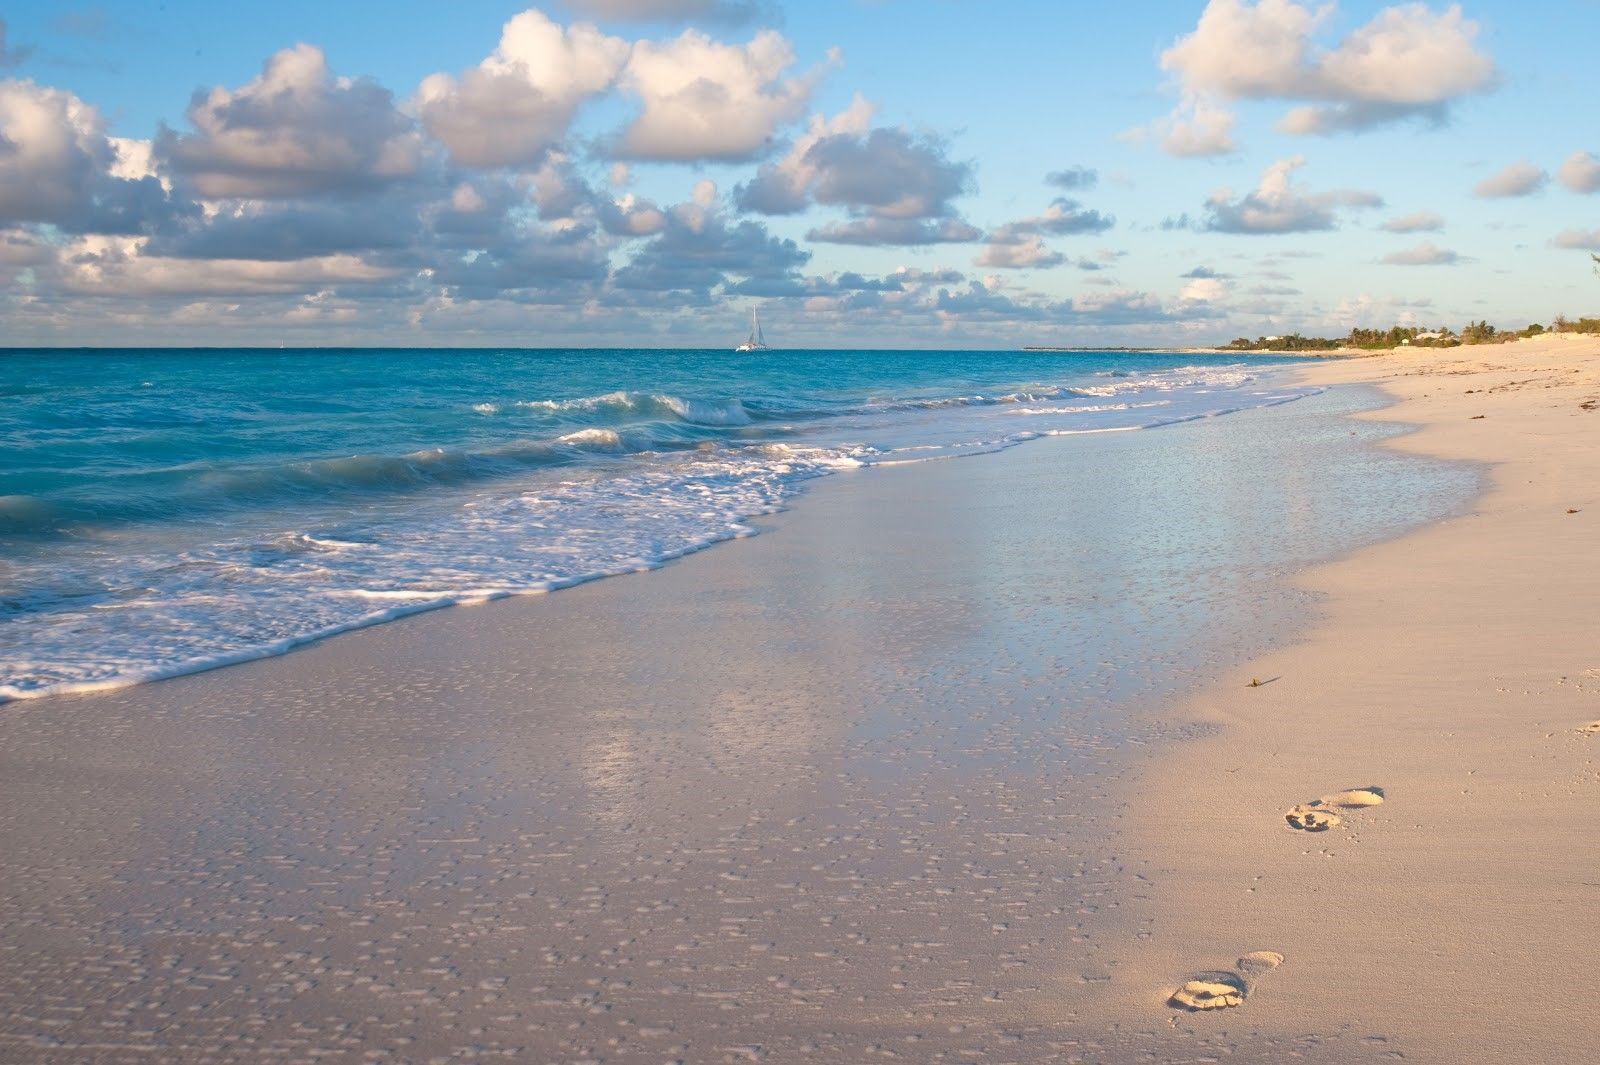 Plan An Adventure In The Turks And Caicos - Day Trip To Fort George Cay